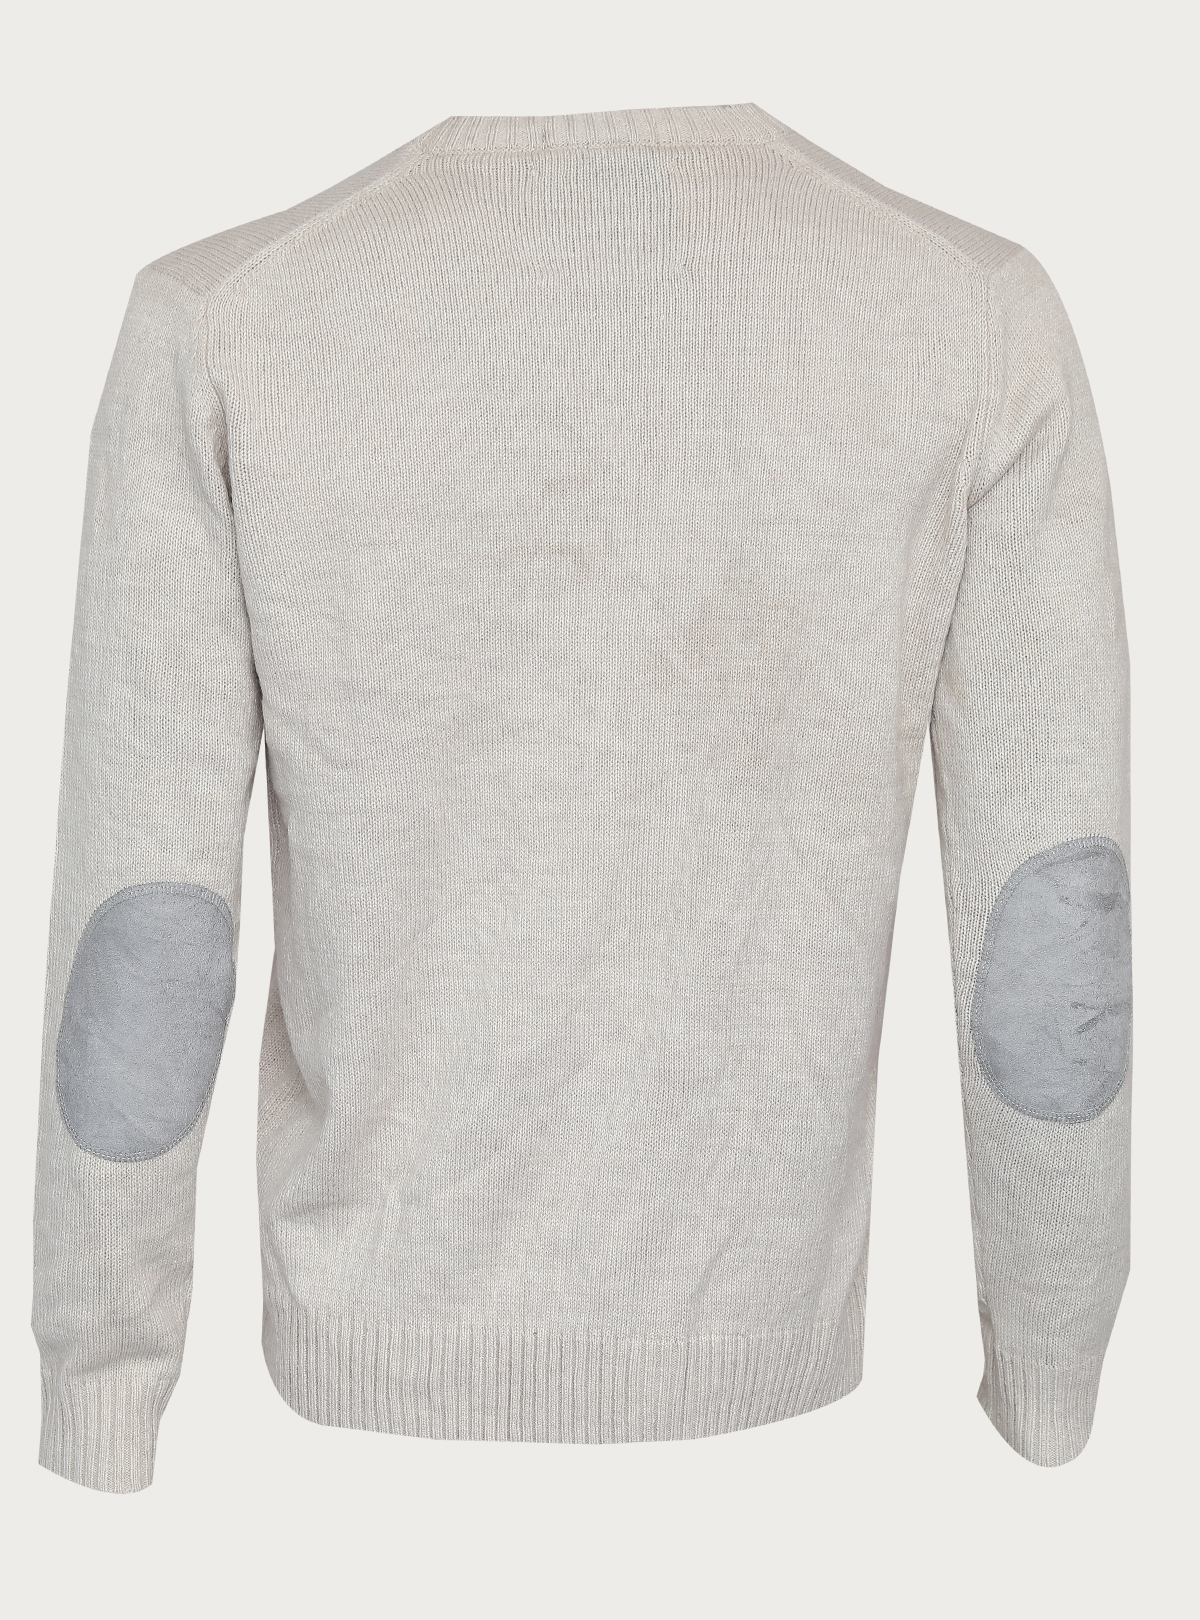 Winter Sweater By ALCOTT